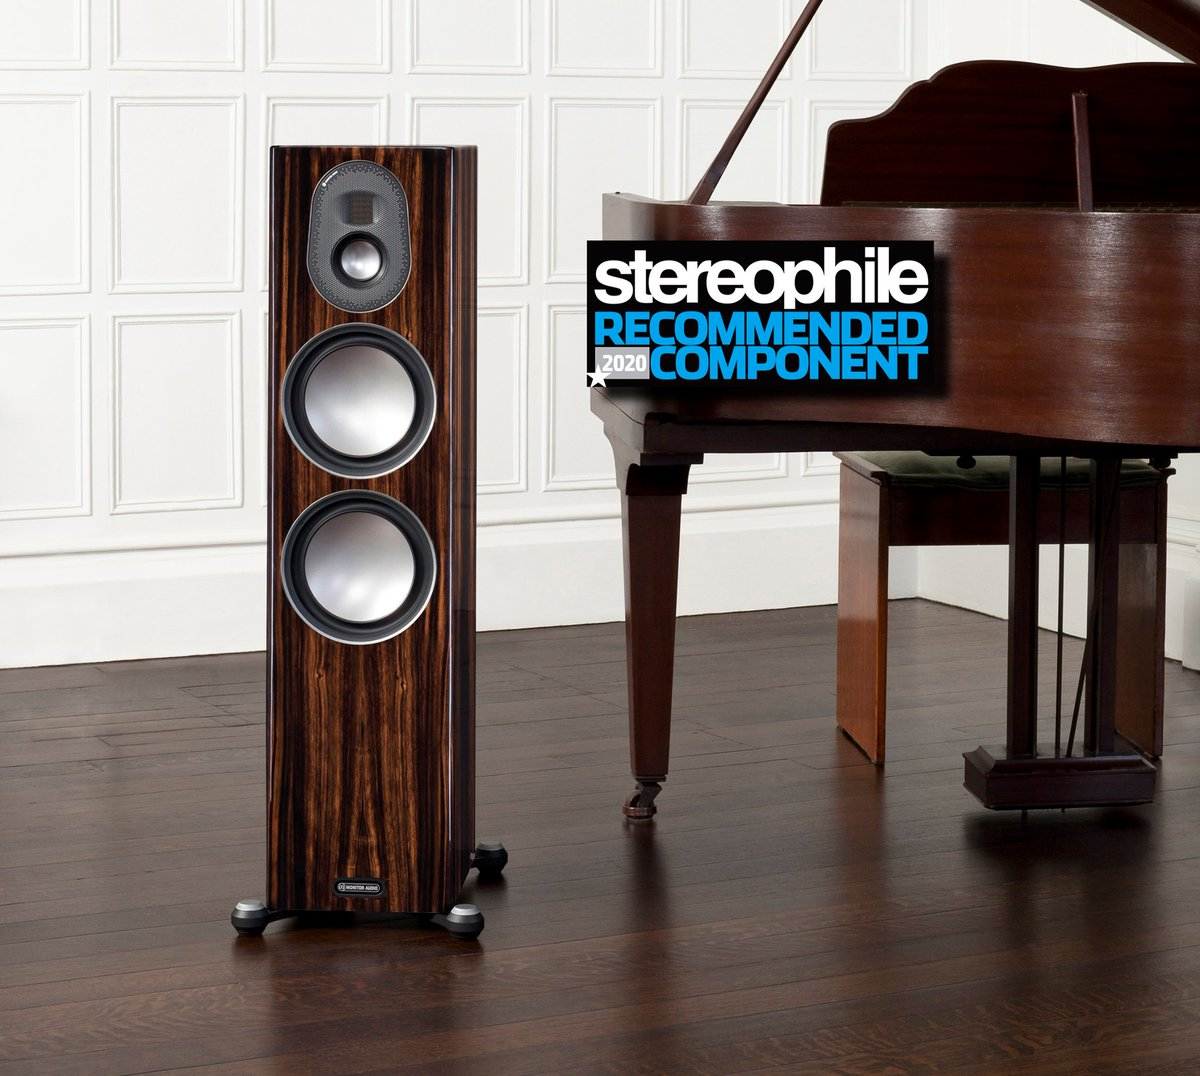 Proud to announce that Our PL300 II, Gold 300 and Silver 300 speakers have been named in @stereophile Magazine's 2020 Recommended Components list.  http://monitoraudio.com/en/blog/stereophile-magazines-2020-recommended-components …pic.twitter.com/pfMN6k4AoU